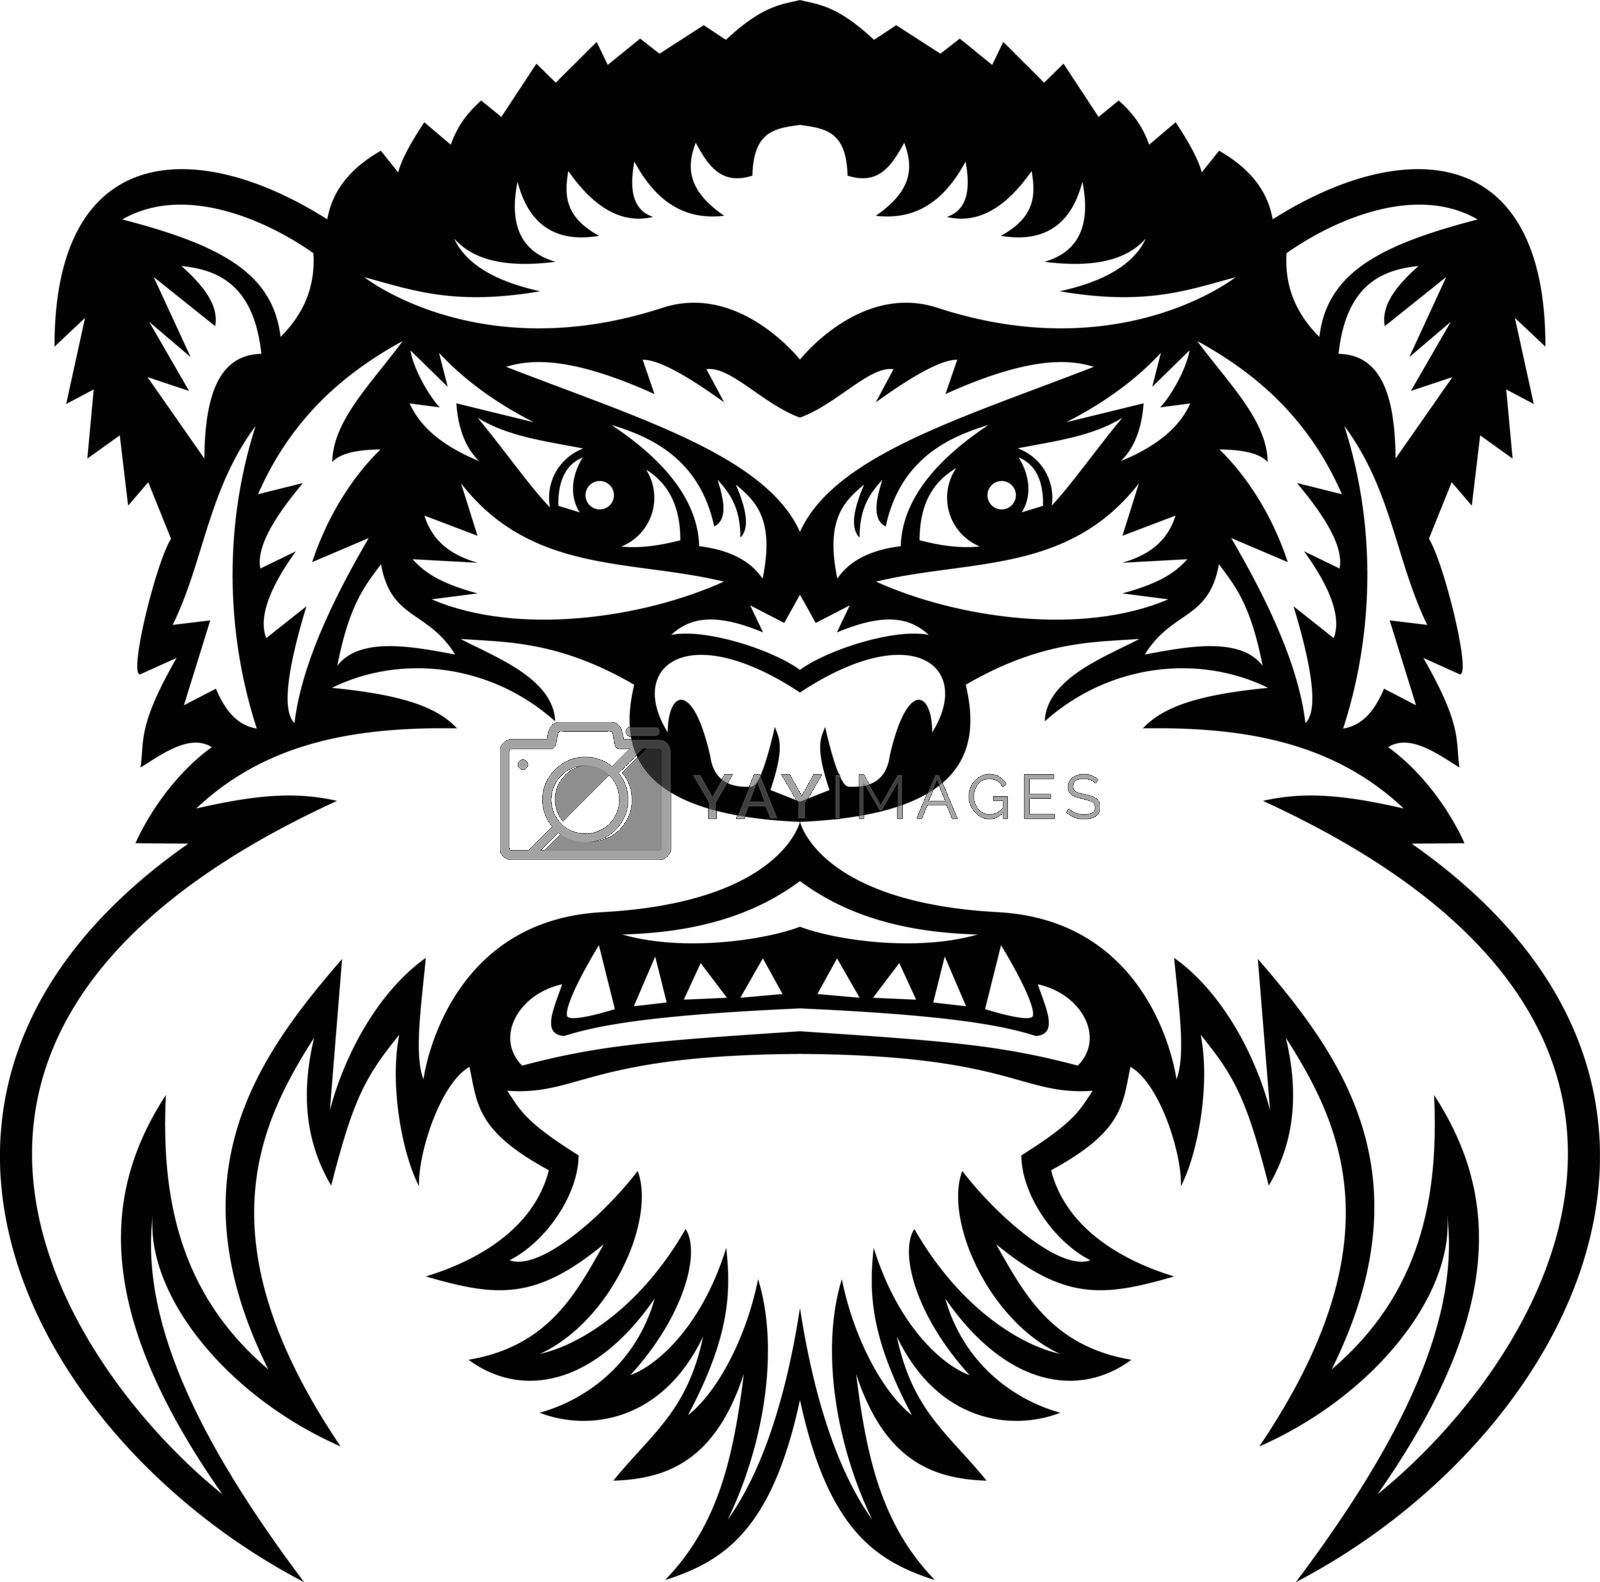 Mascot illustration of head of an emperor tamarin or Saguinus imperator, a species of tamarin monkey in the Amazonas viewed from front on isolated background in retro black and white style.